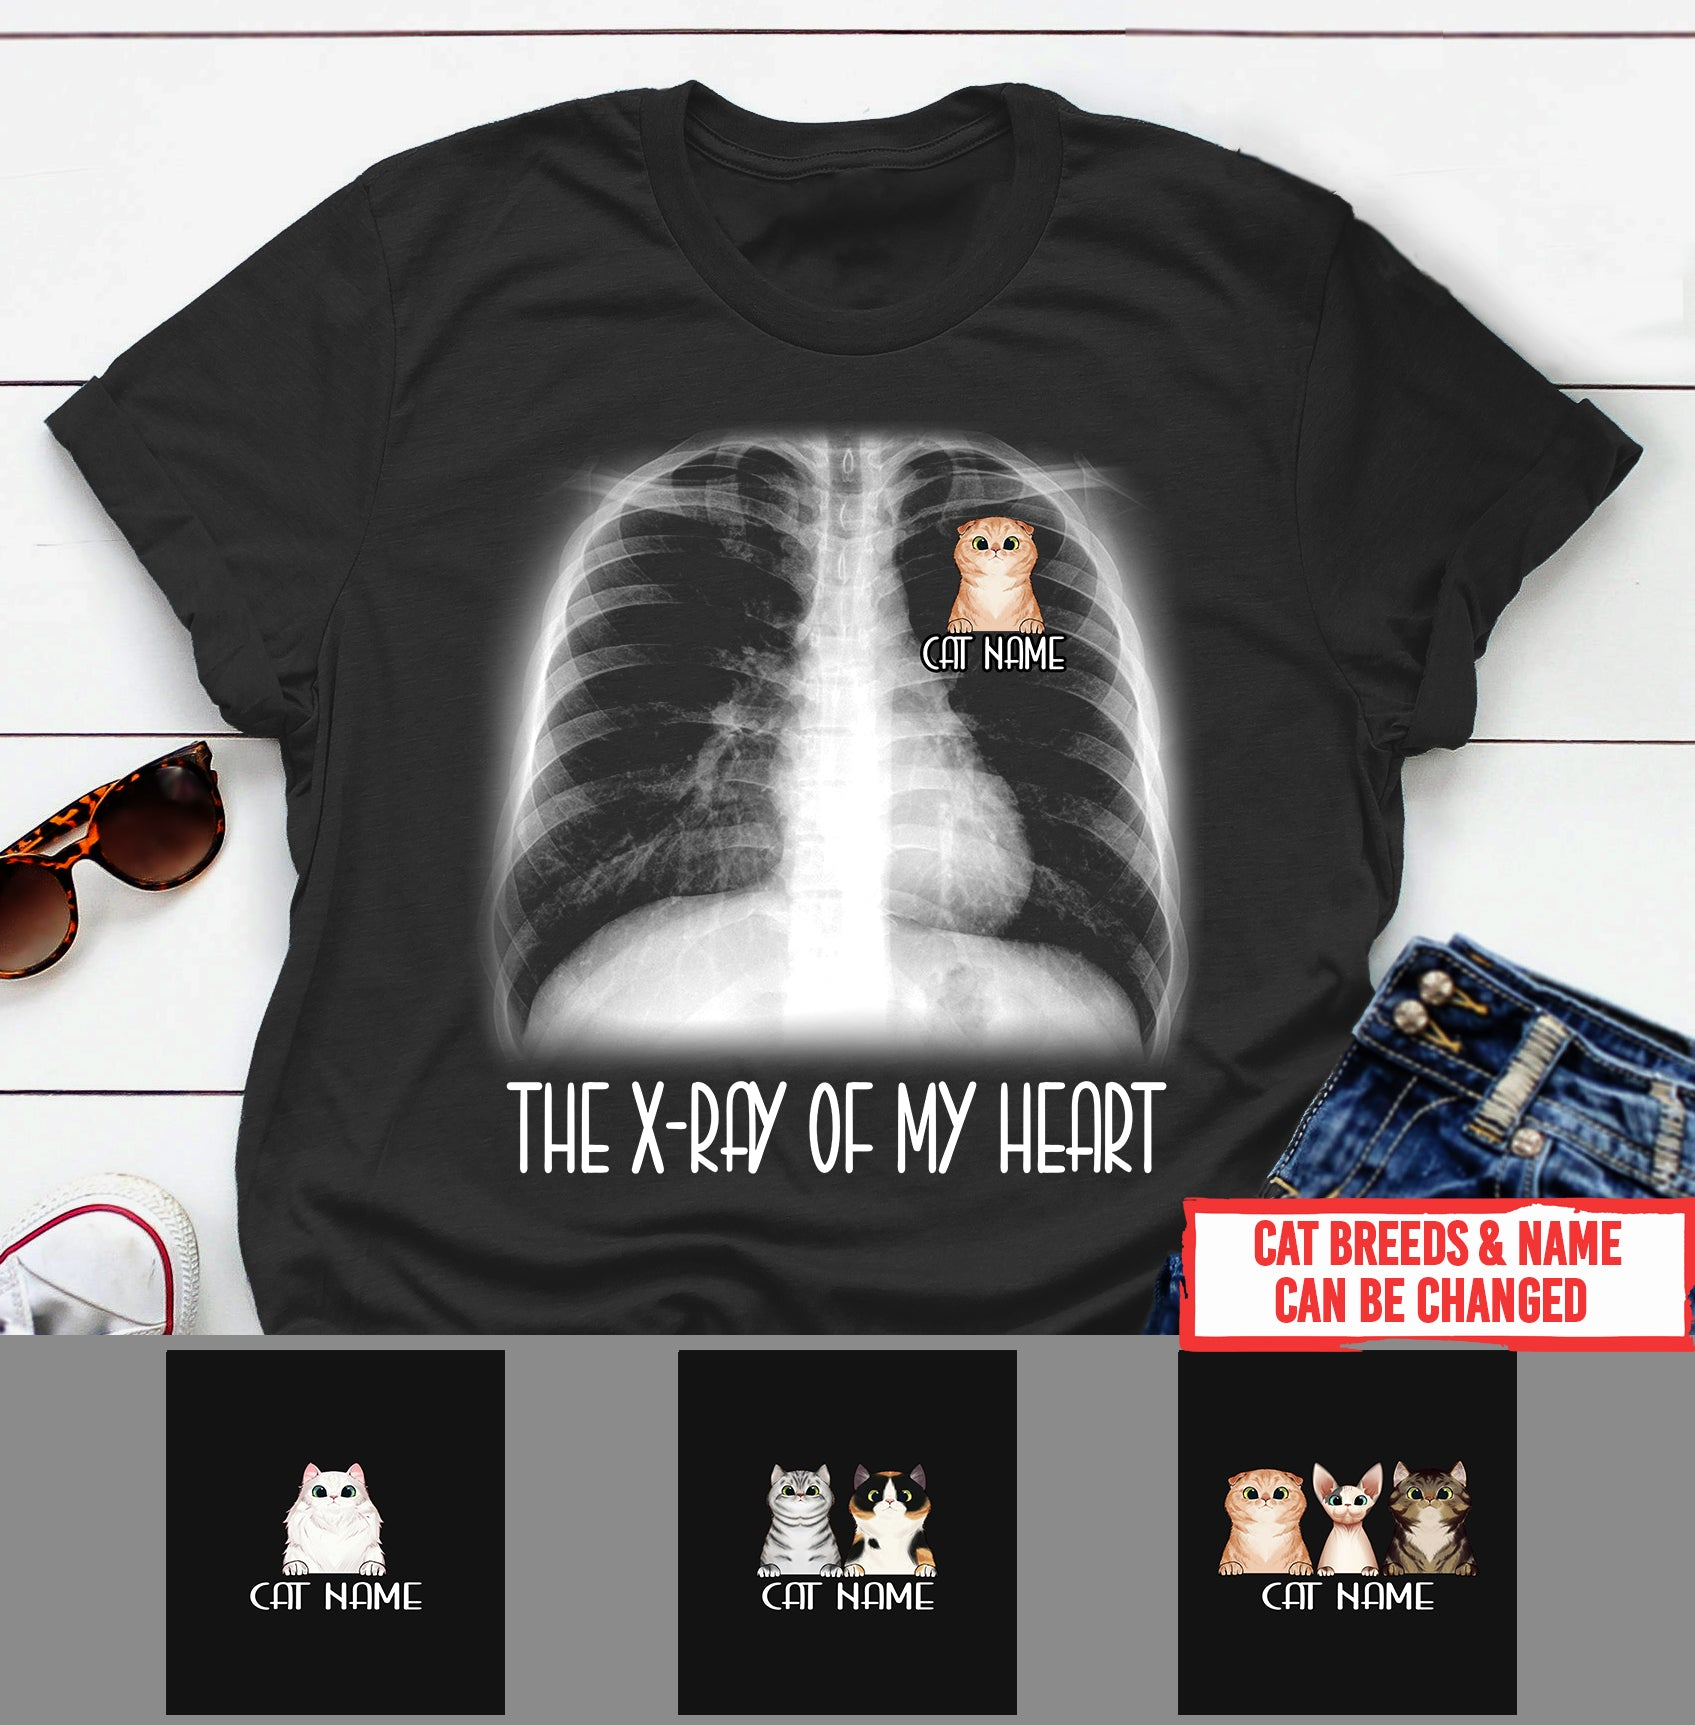 Personalized Cat Shirt - The X-ray of my heart